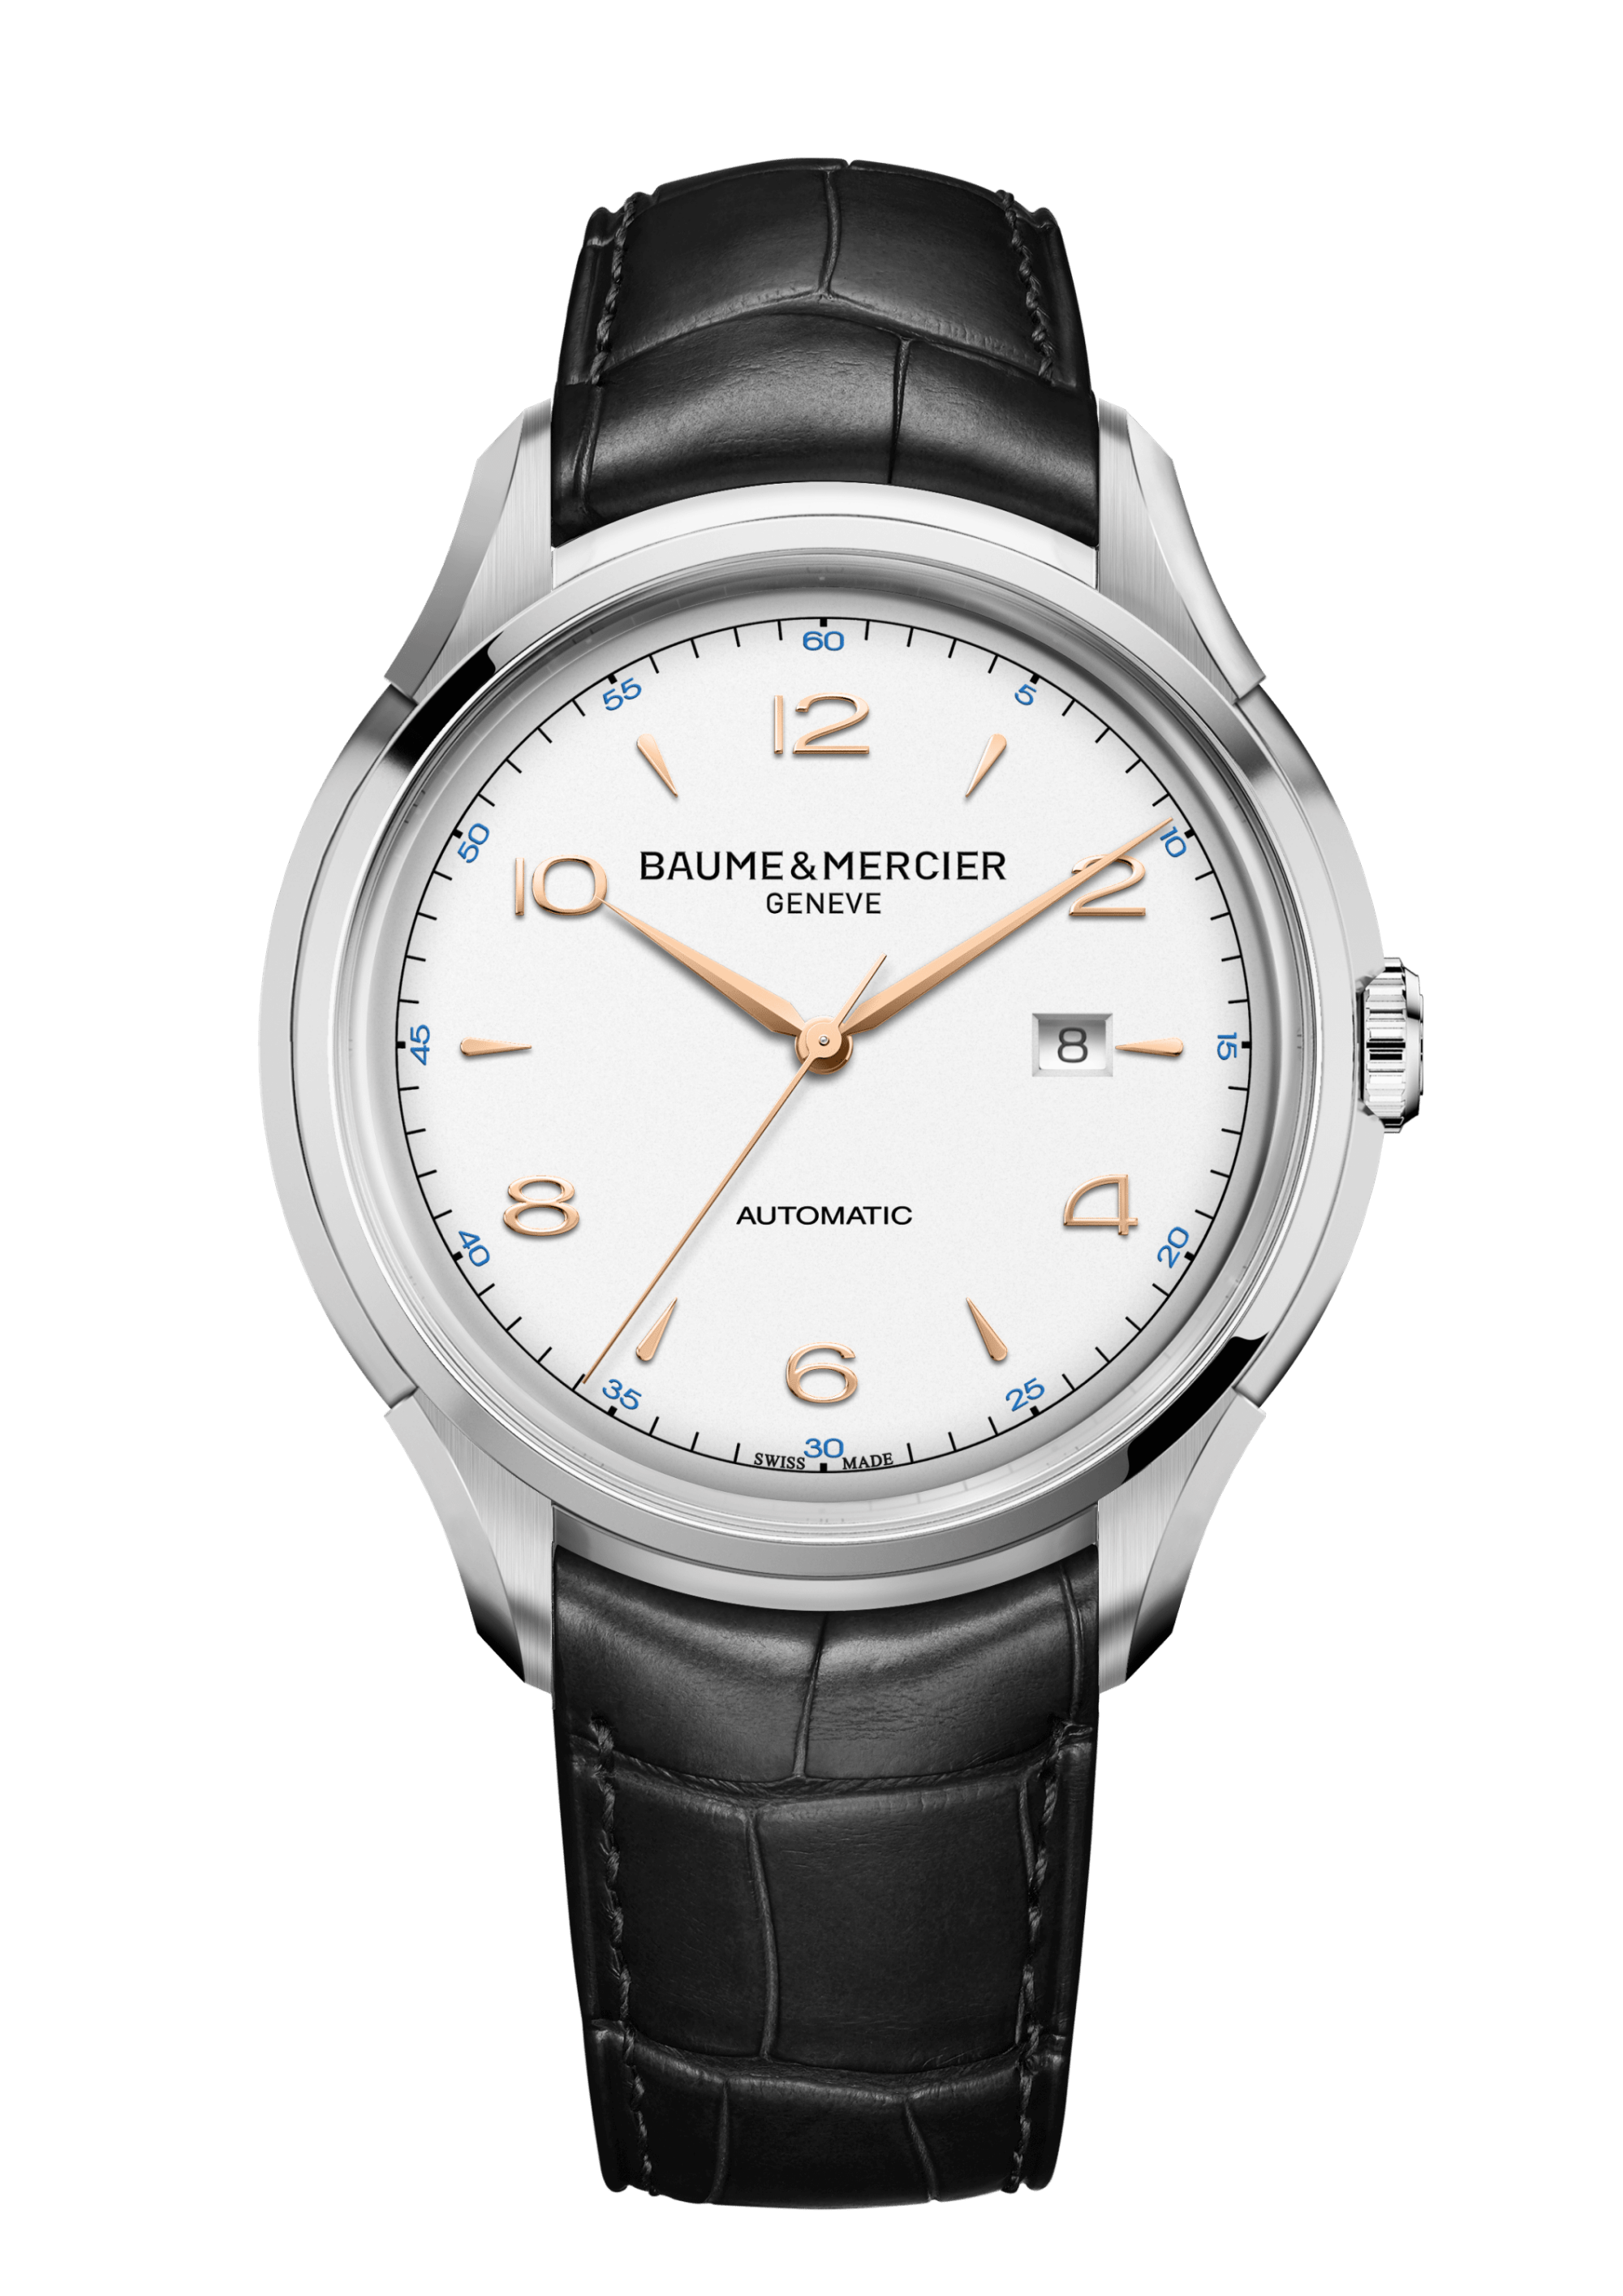 Clifton 10365 Watch for men | Check Prices on Baume & Mercier Front -